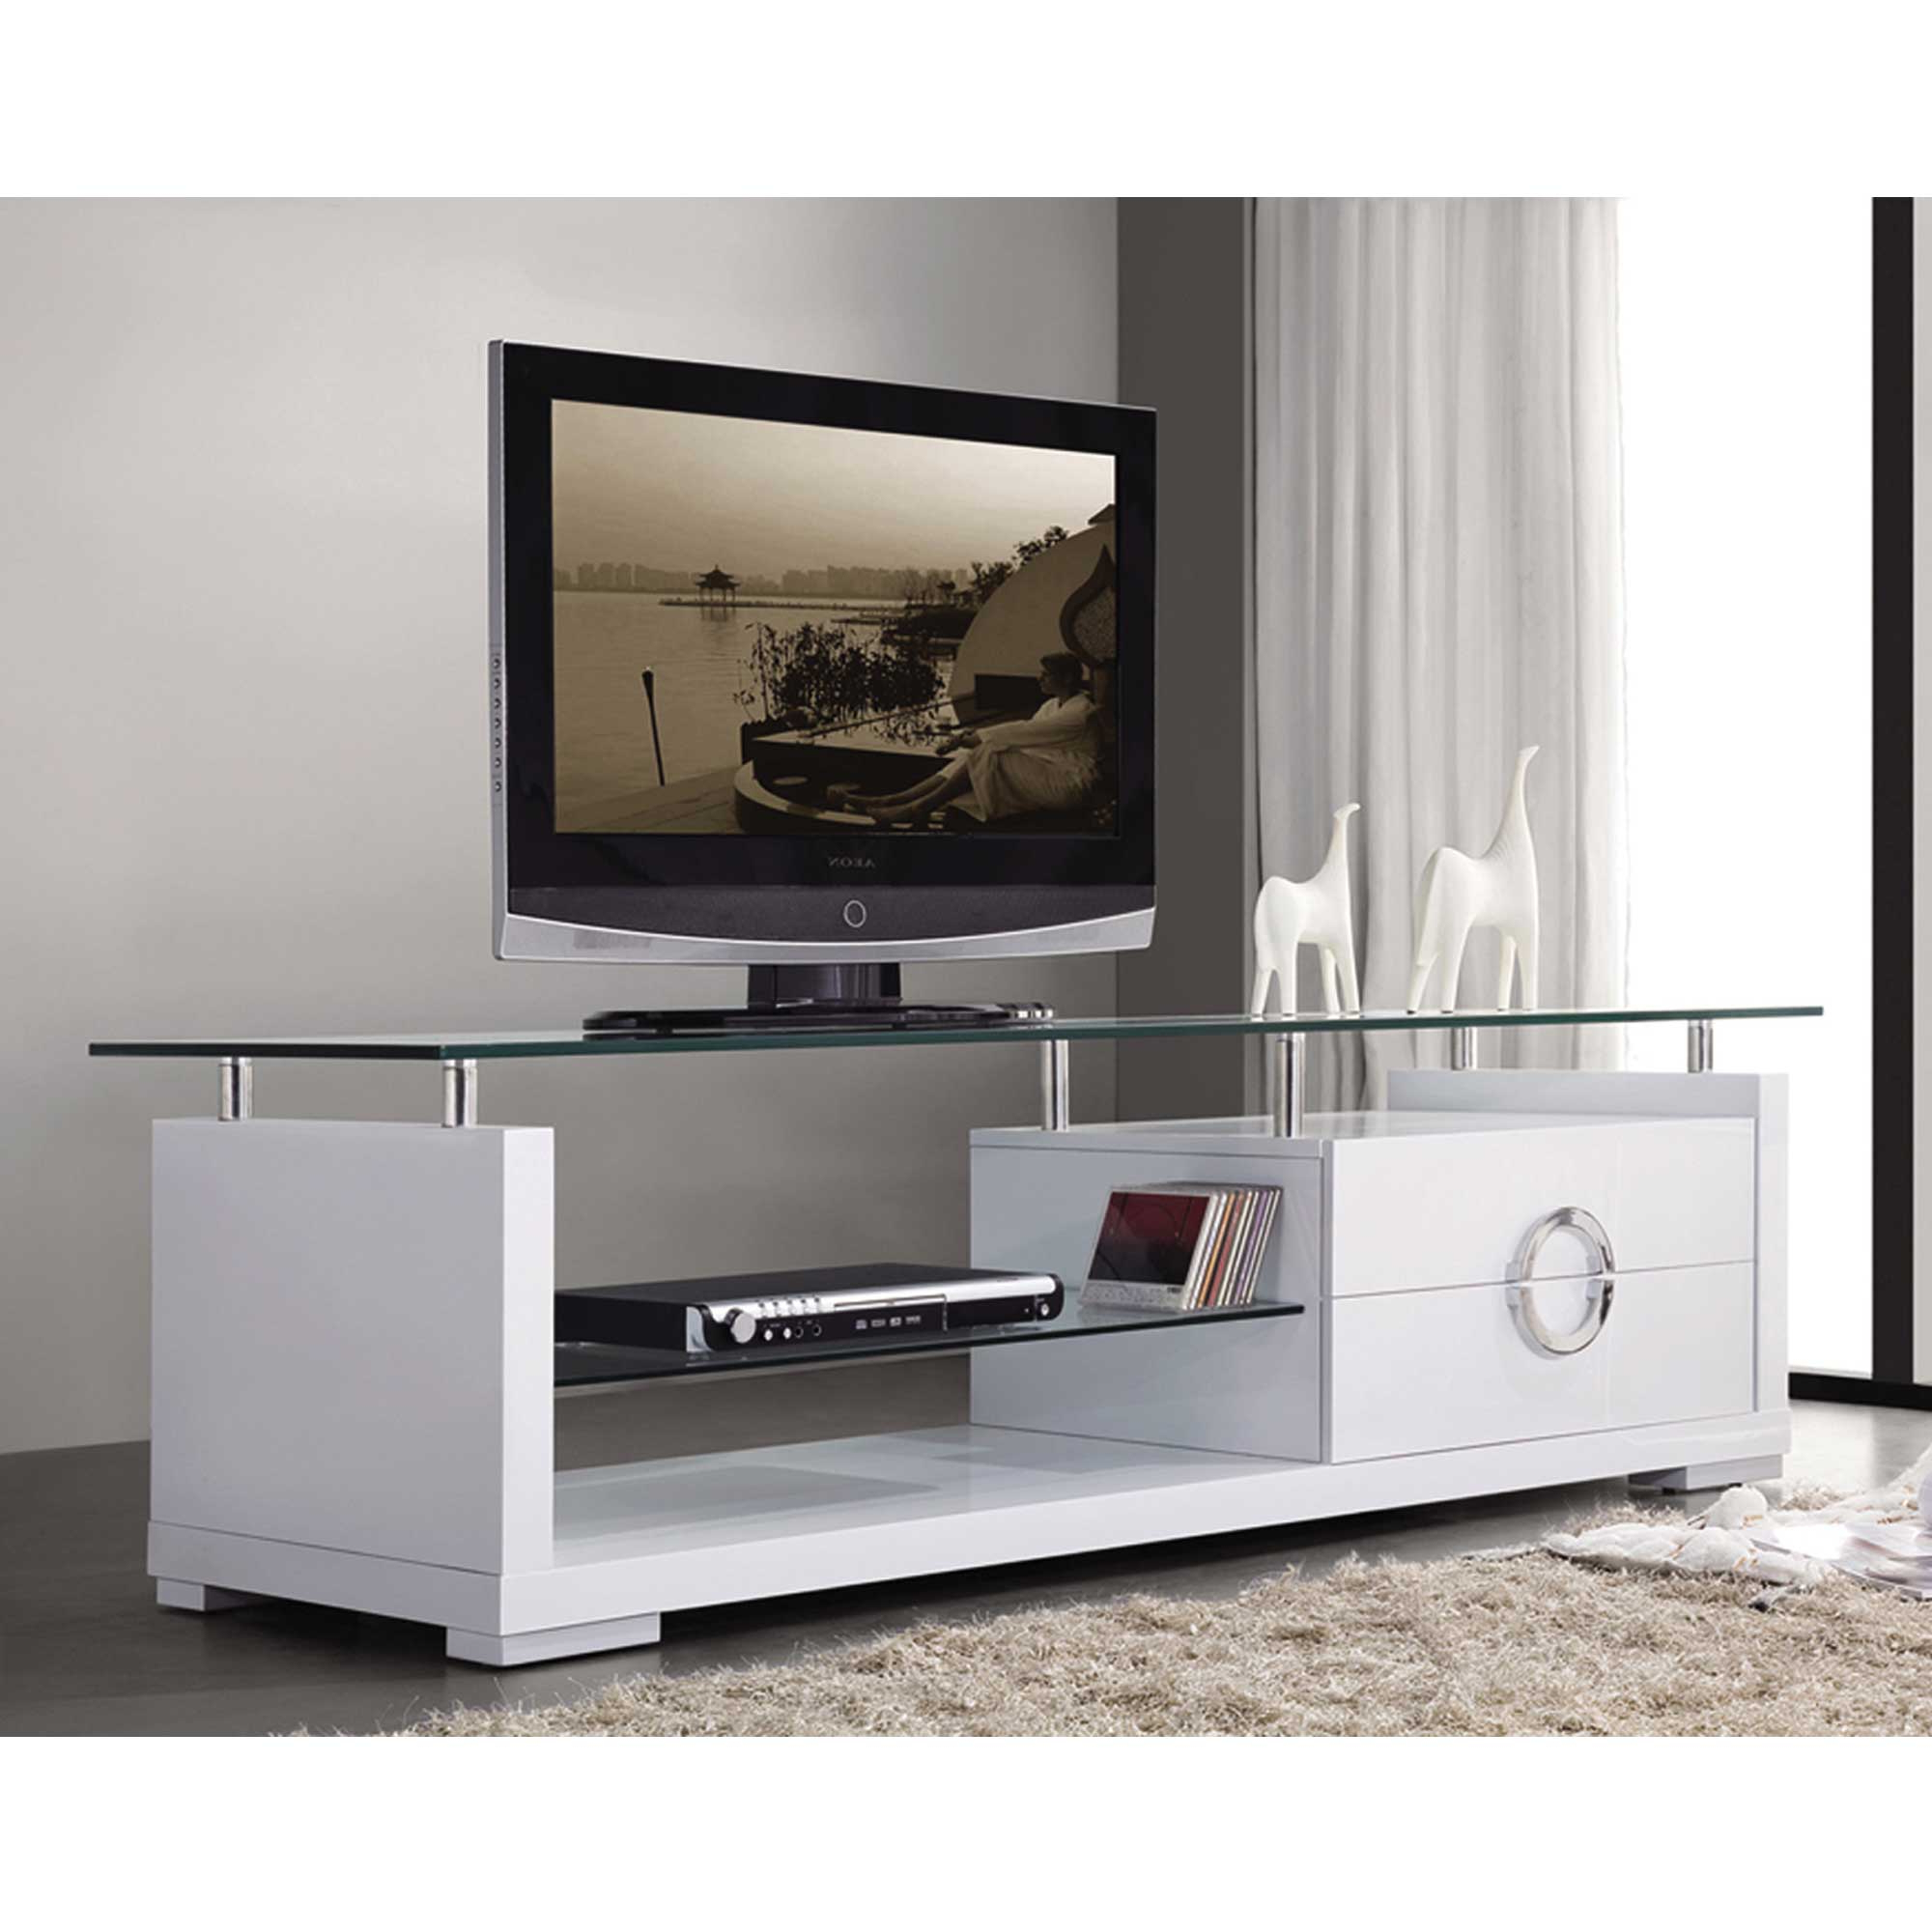 Most Recent Contemporary Tv Stand – Home Deco For White Contemporary Tv Stands (View 11 of 20)